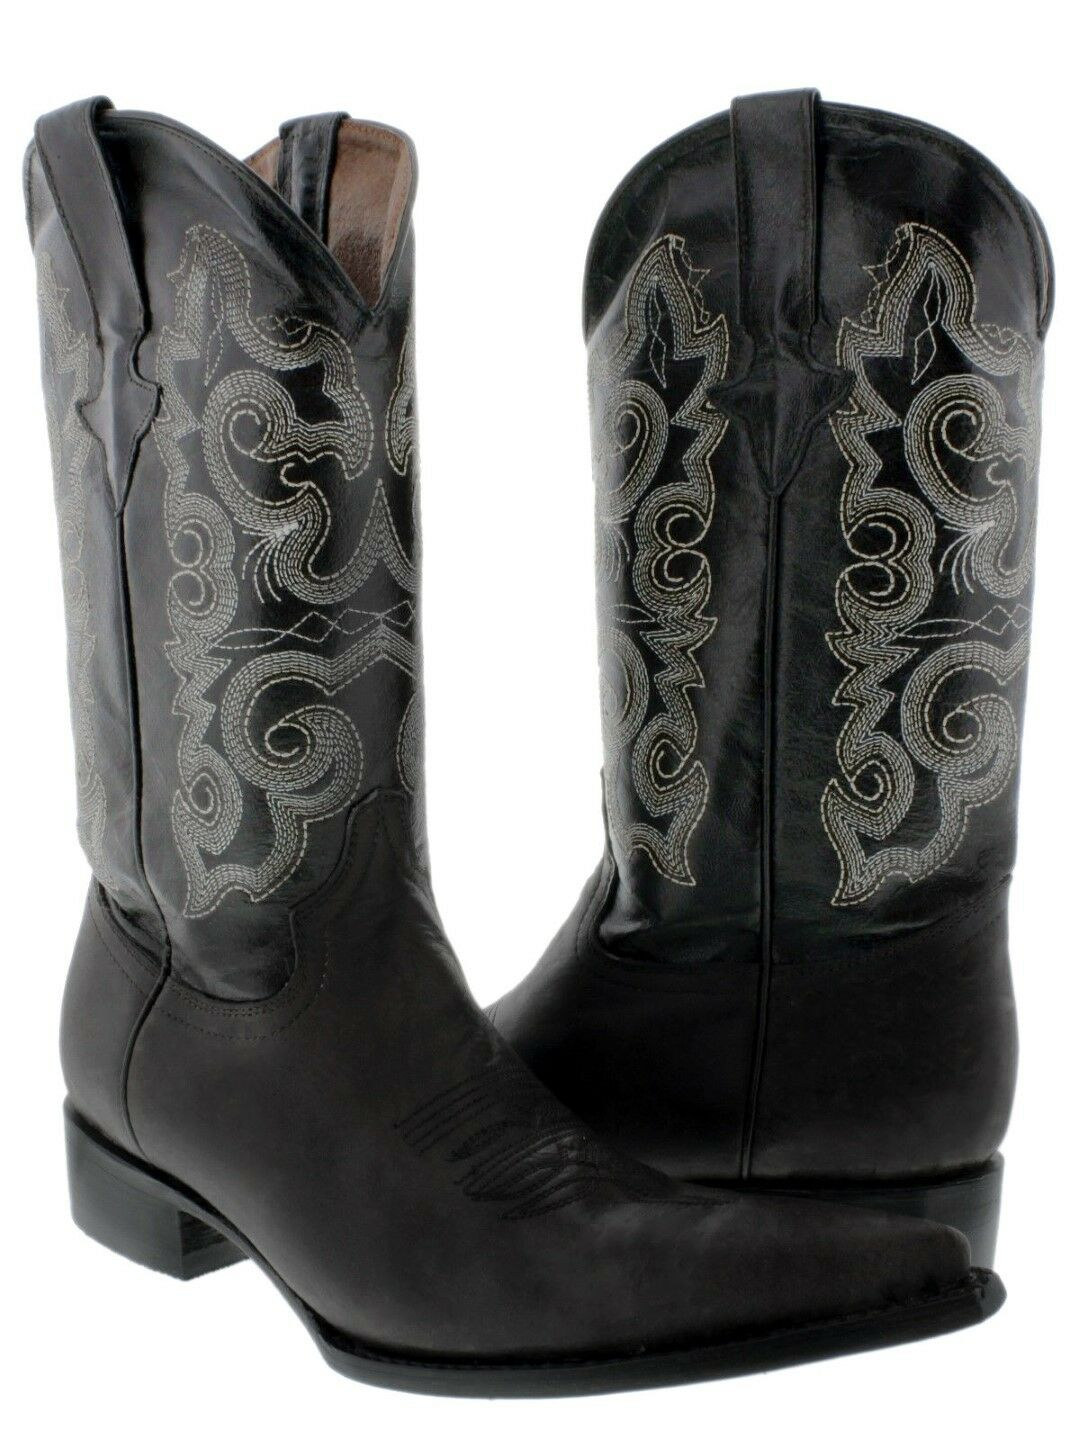 Men's Black Leather Design Dress Cowboy Boots Rodeo Pointed 3X Toe